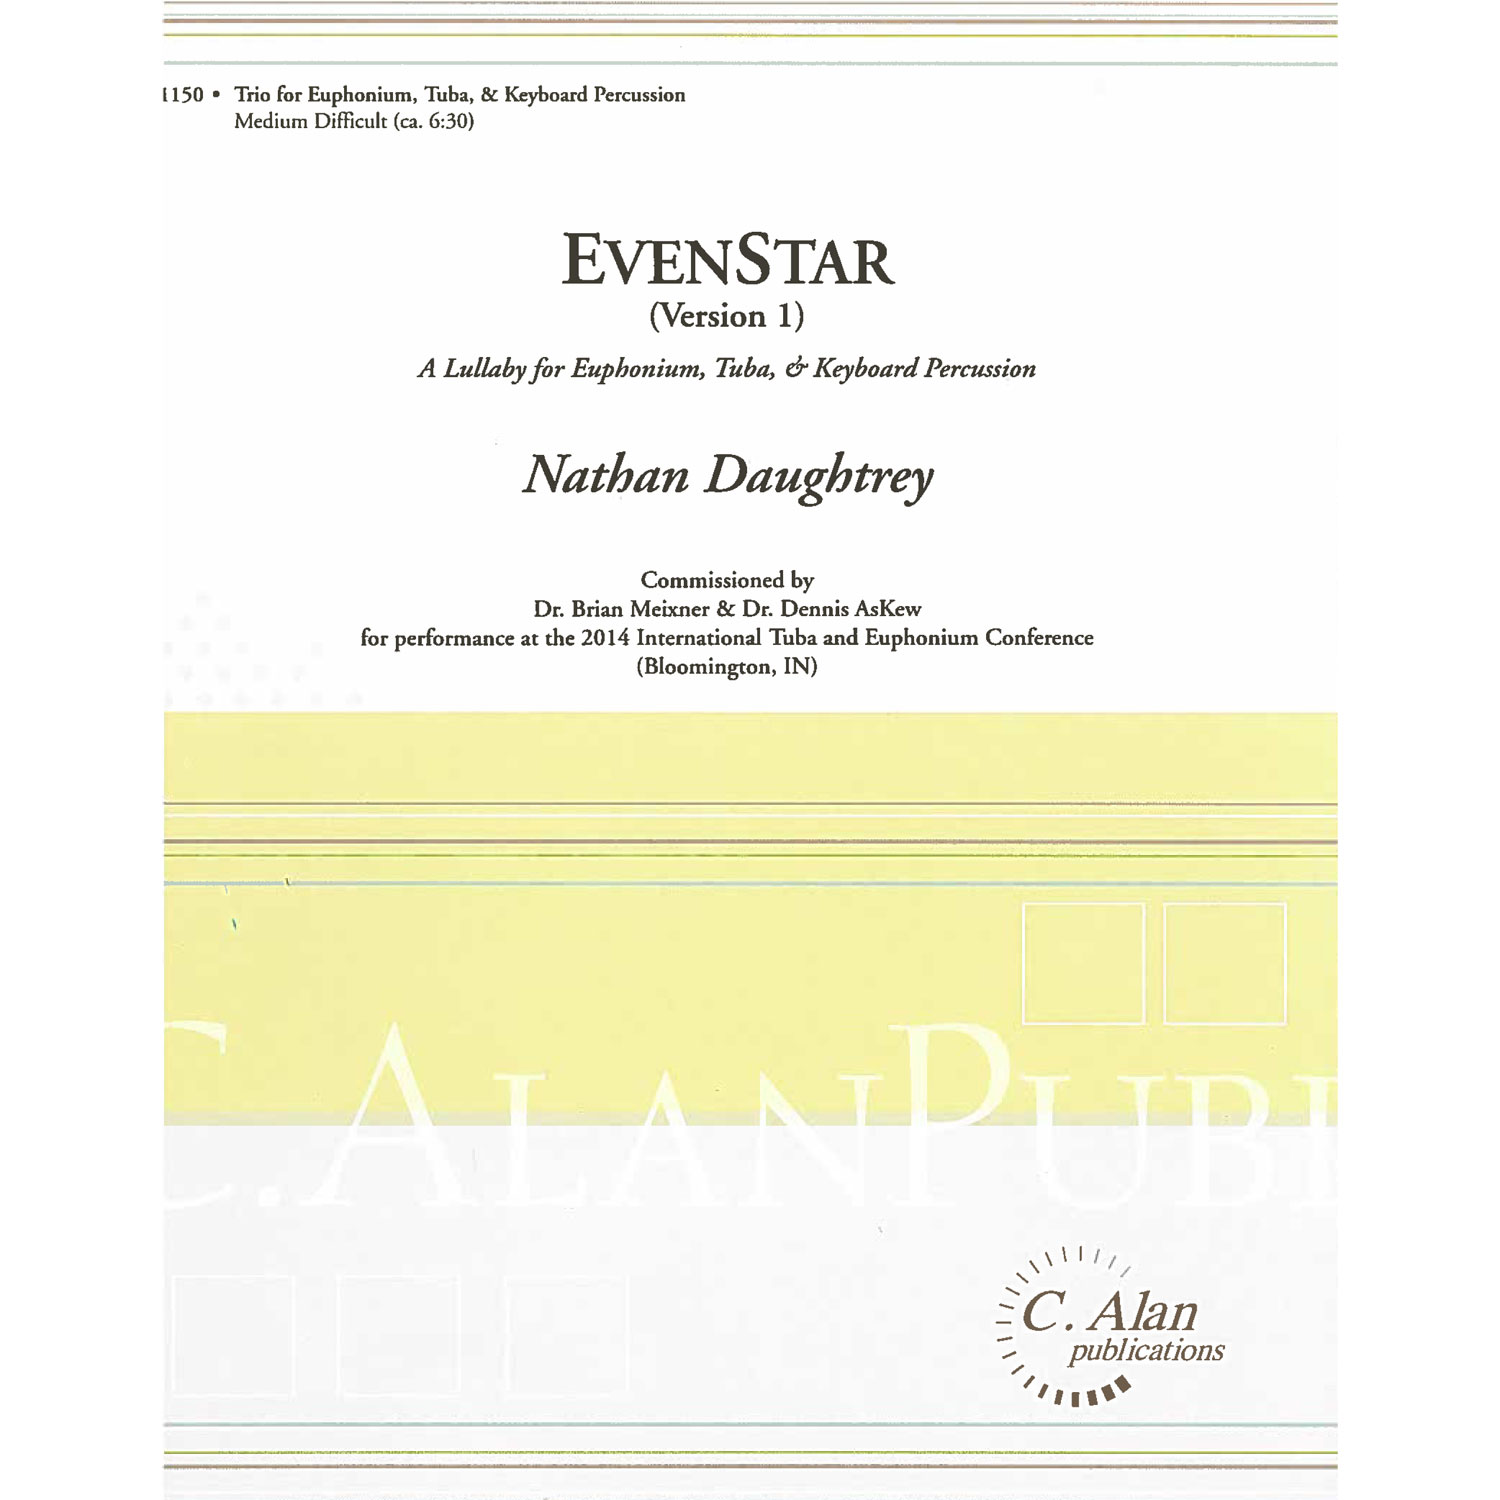 EvenStar (Version 1) by Nathan Daughtrey